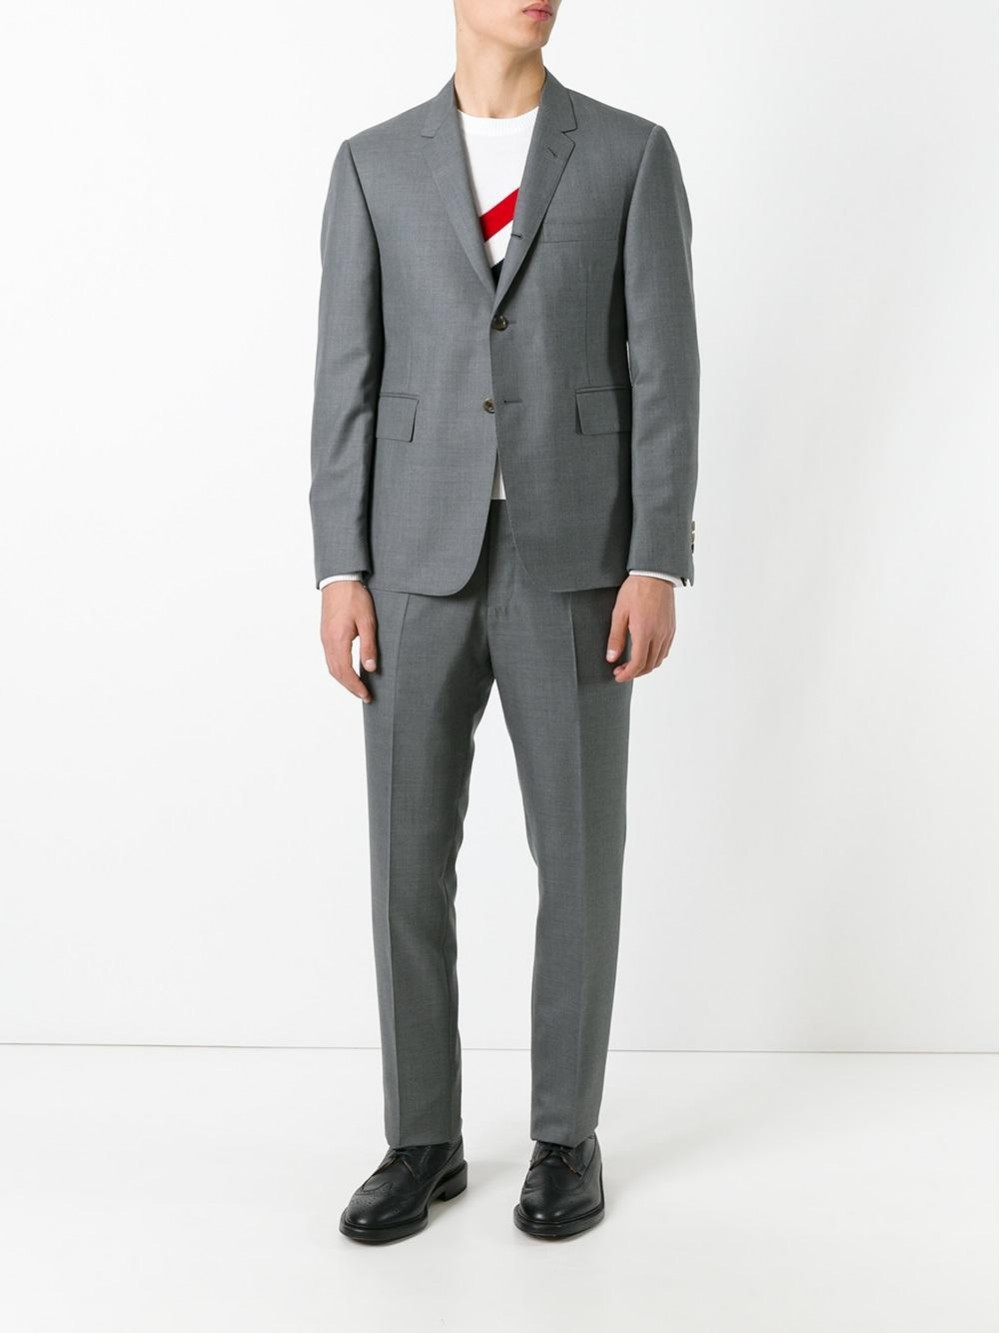 THOM BROWNE Two Piece Suit MSC001A00626-035